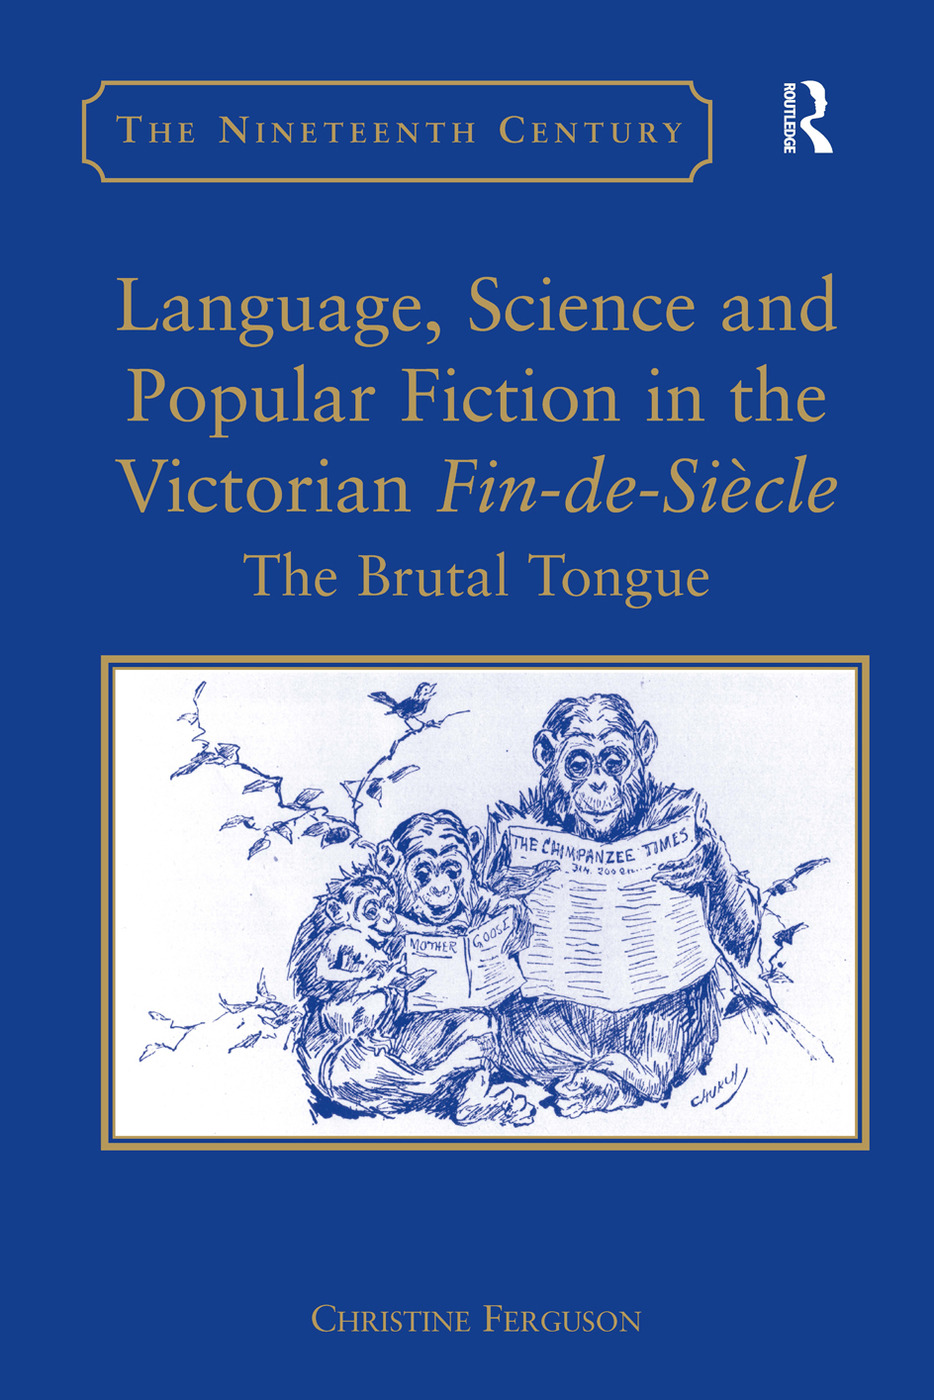 Language, Science and Popular Fiction in the Victorian Fin-de-Siècle: The Brutal Tongue book cover